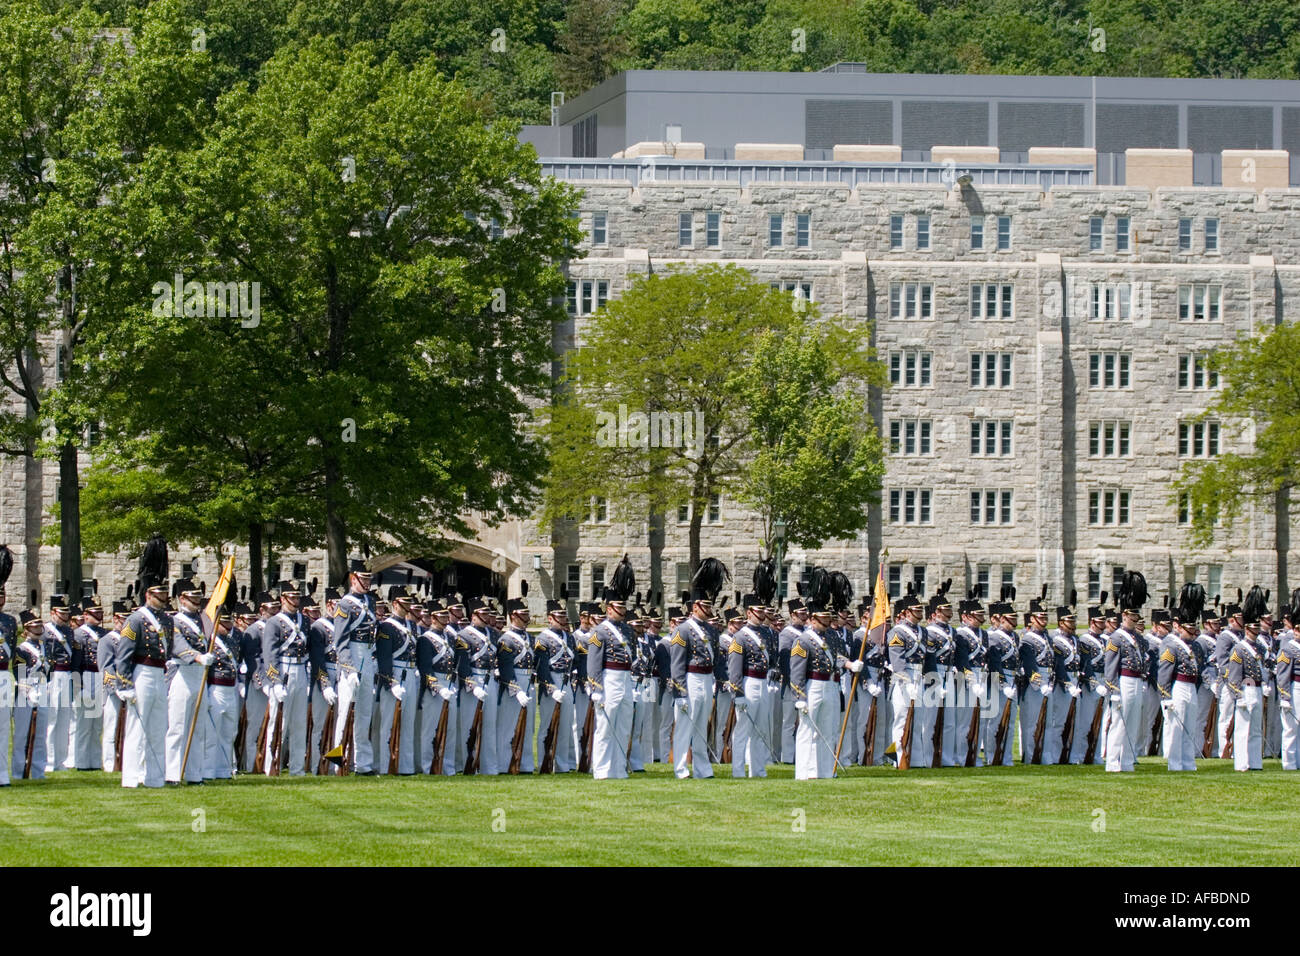 Rencontres à West Point Military Academy